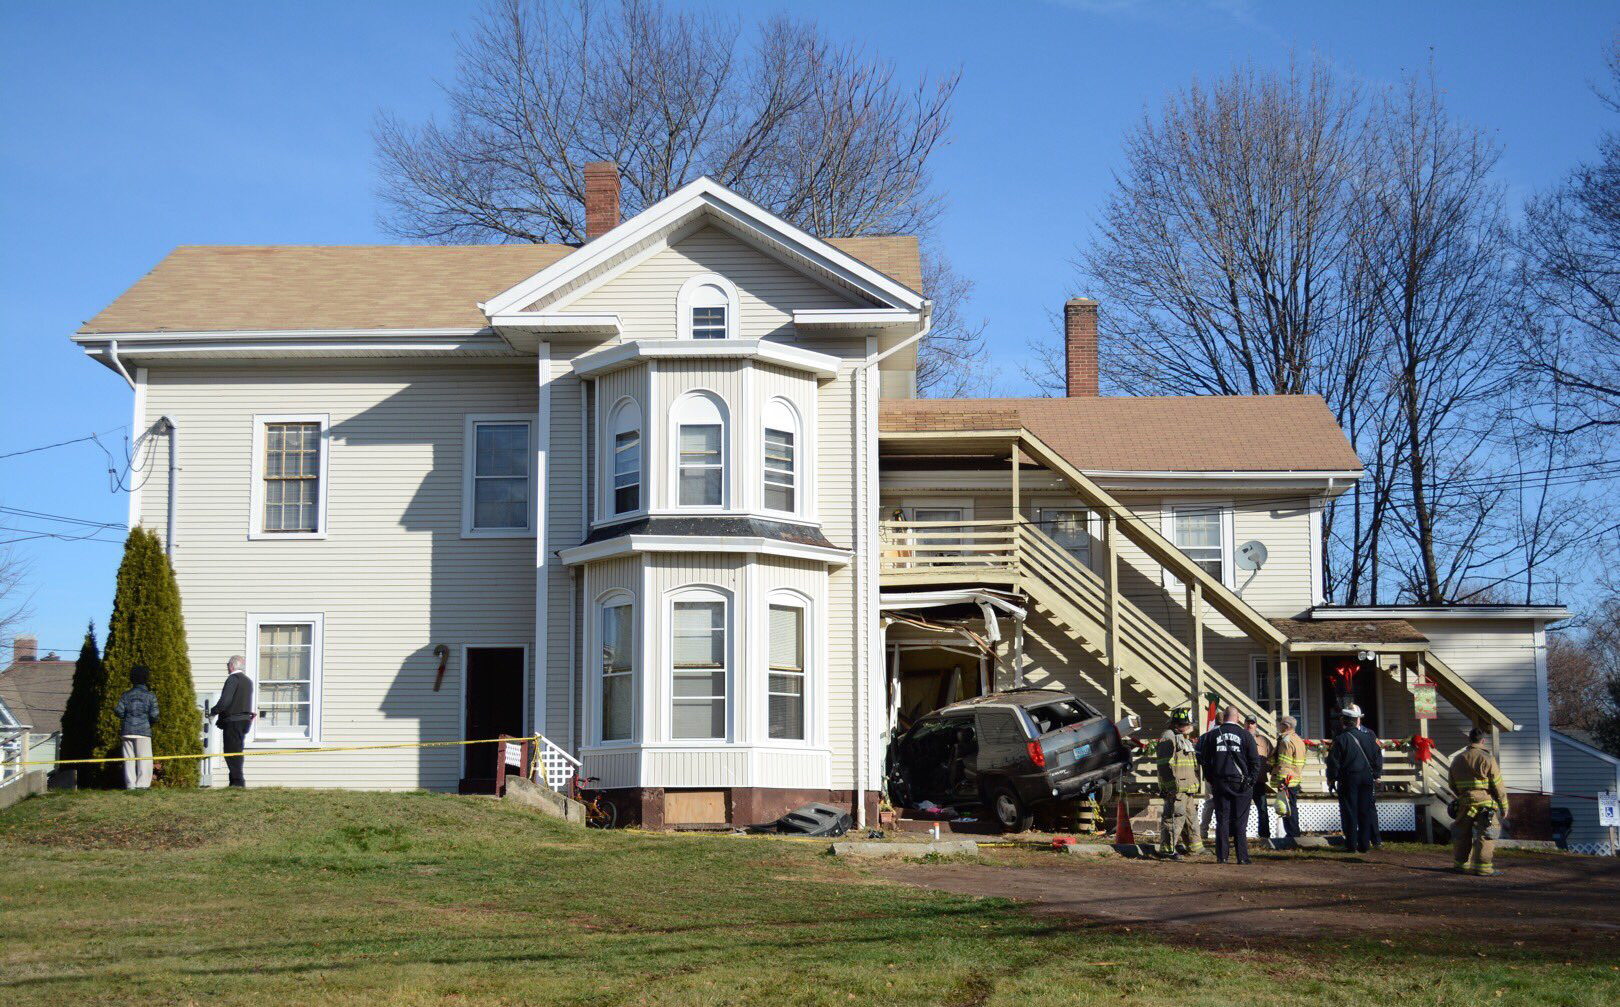 A man and woman were seriously injured after a car crashed into a home in Meriden on Tuesday, Dec. 6, 2016. | Bryan Lipiner, Record-Journal